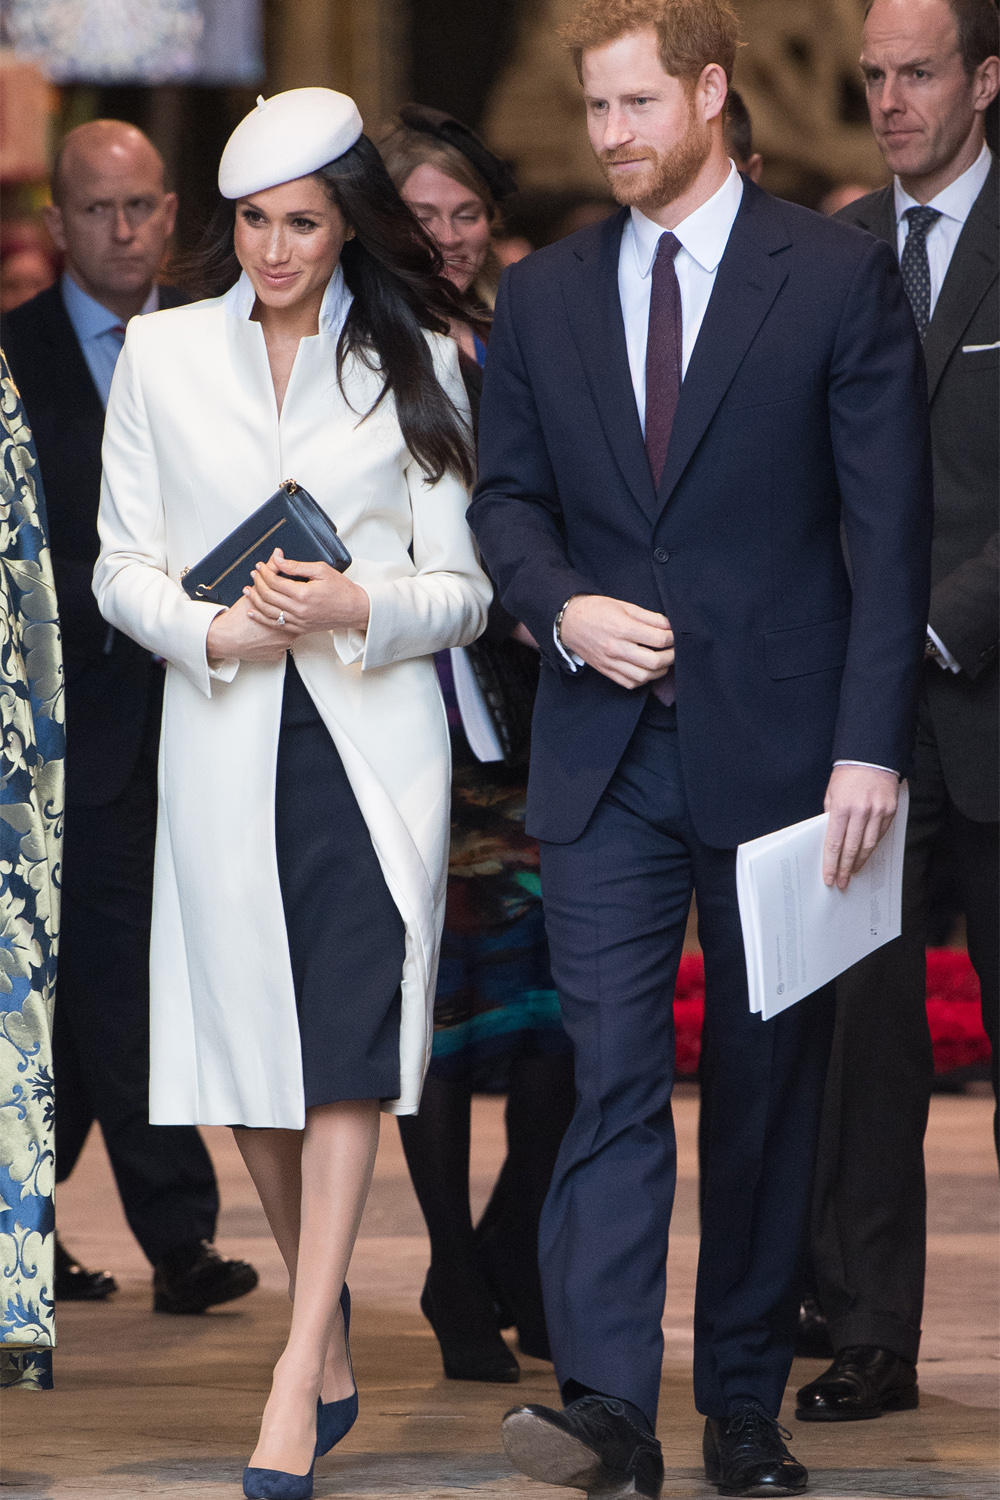 Prince Harry's engagement to Meghan Markle is controversial